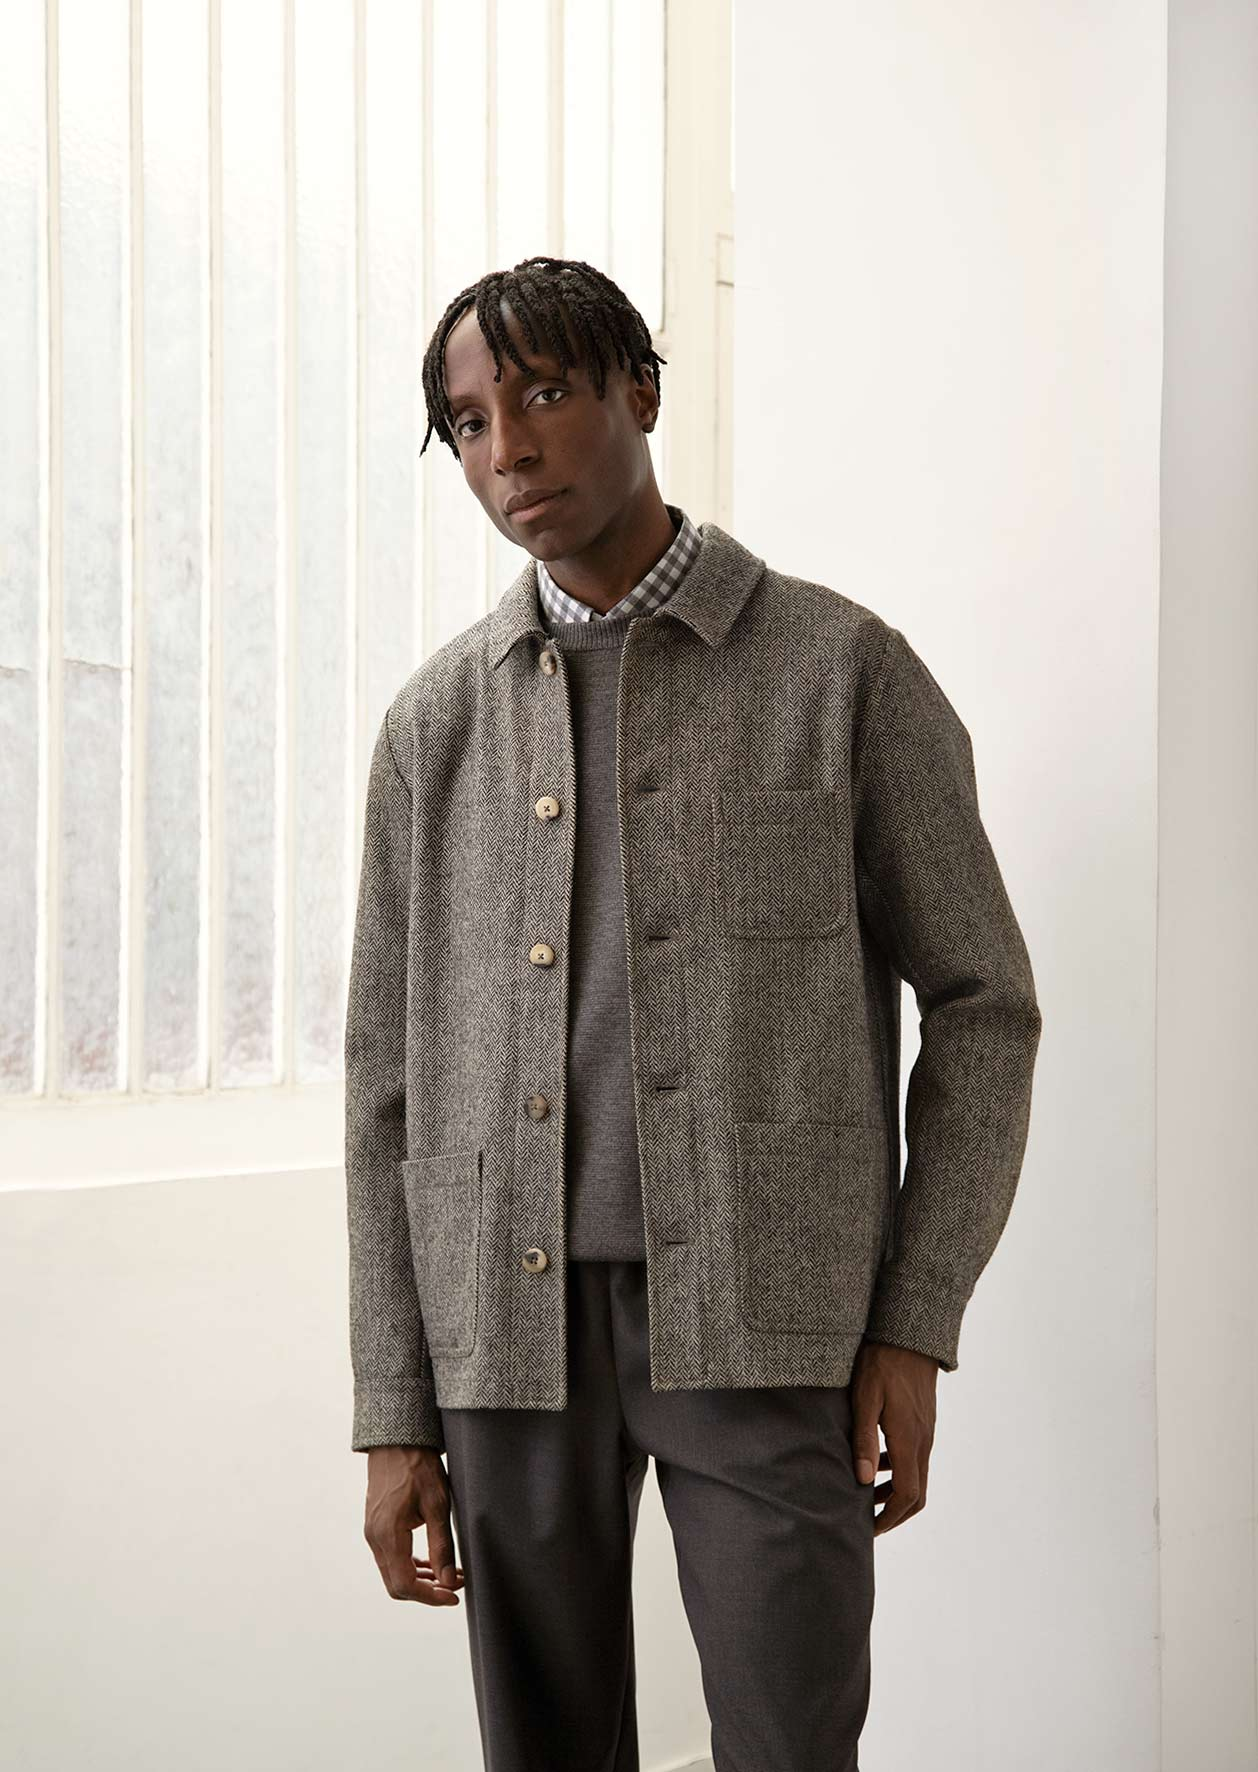 De Bonne Facture - Architect jacket - Wool - Grey & ecru herringbone